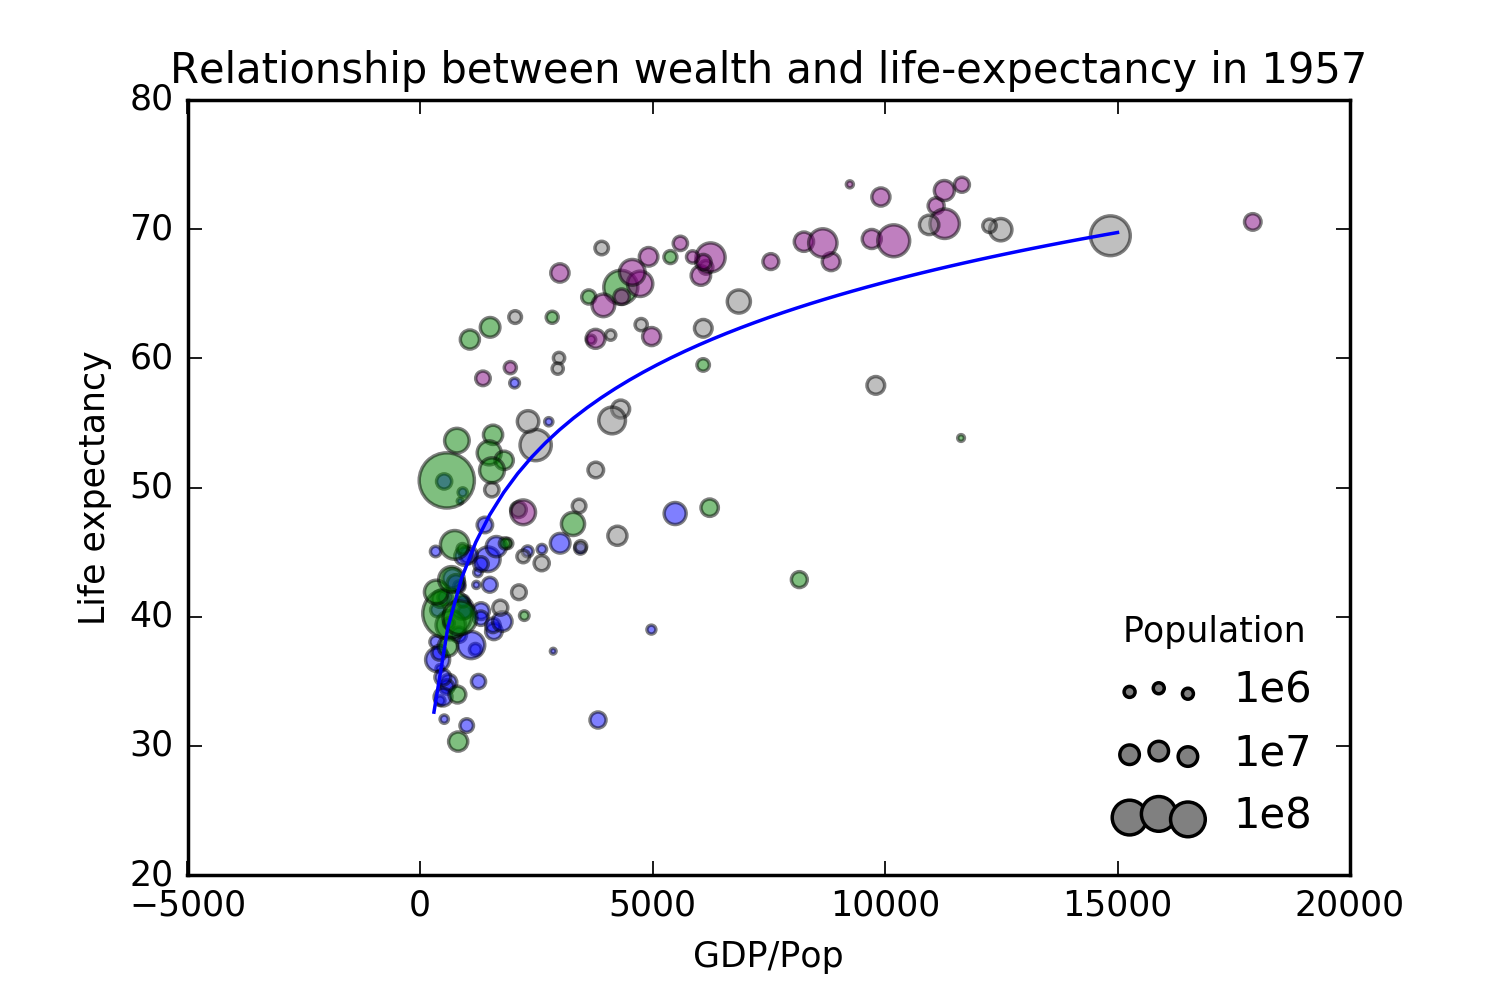 An example visualization of the gapminder data.